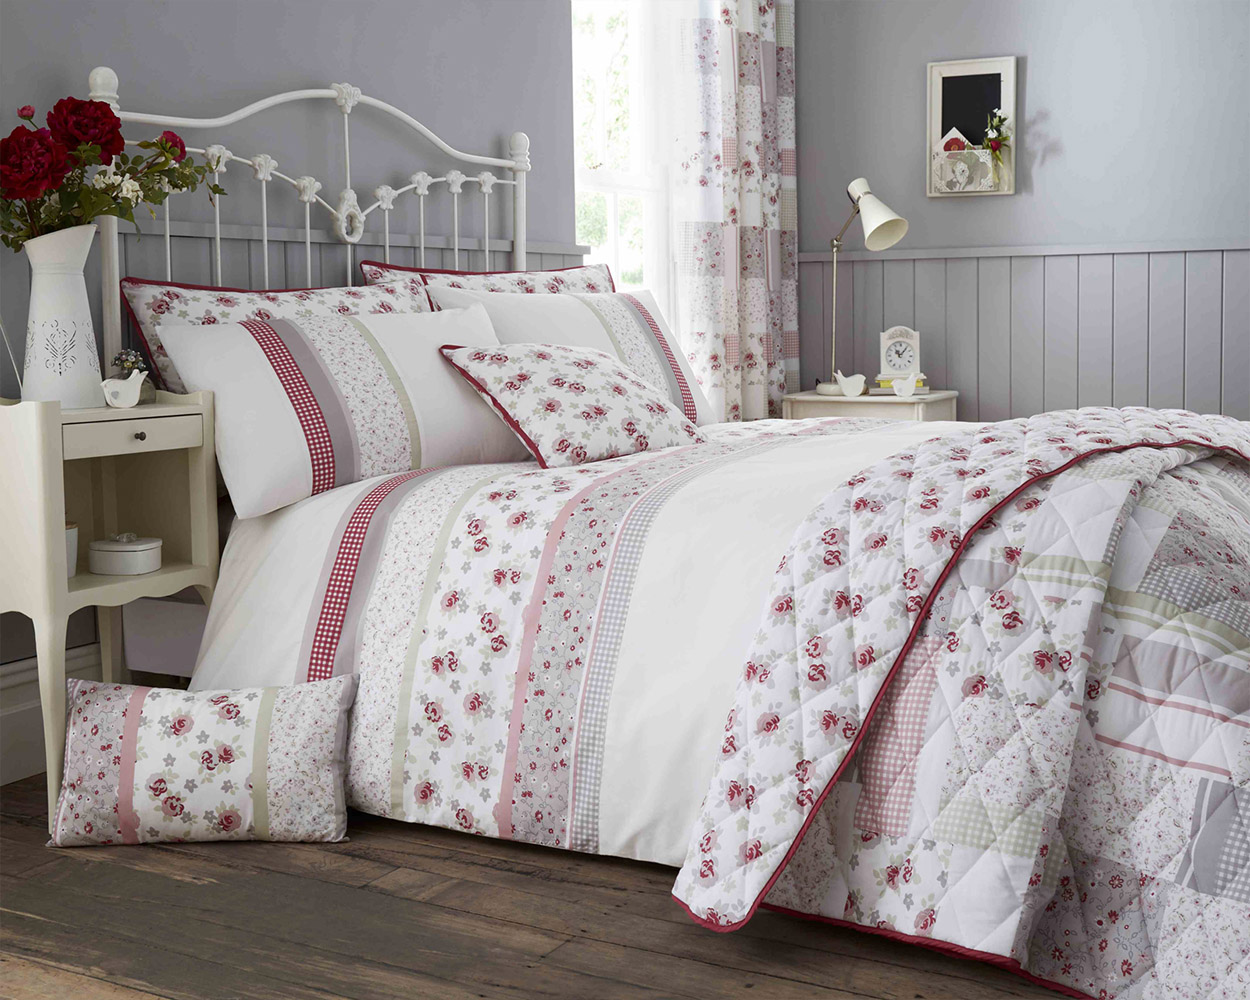 Cotton Rich Garden Flower Design Duvet Set and Bedding Range in Pink / Grey